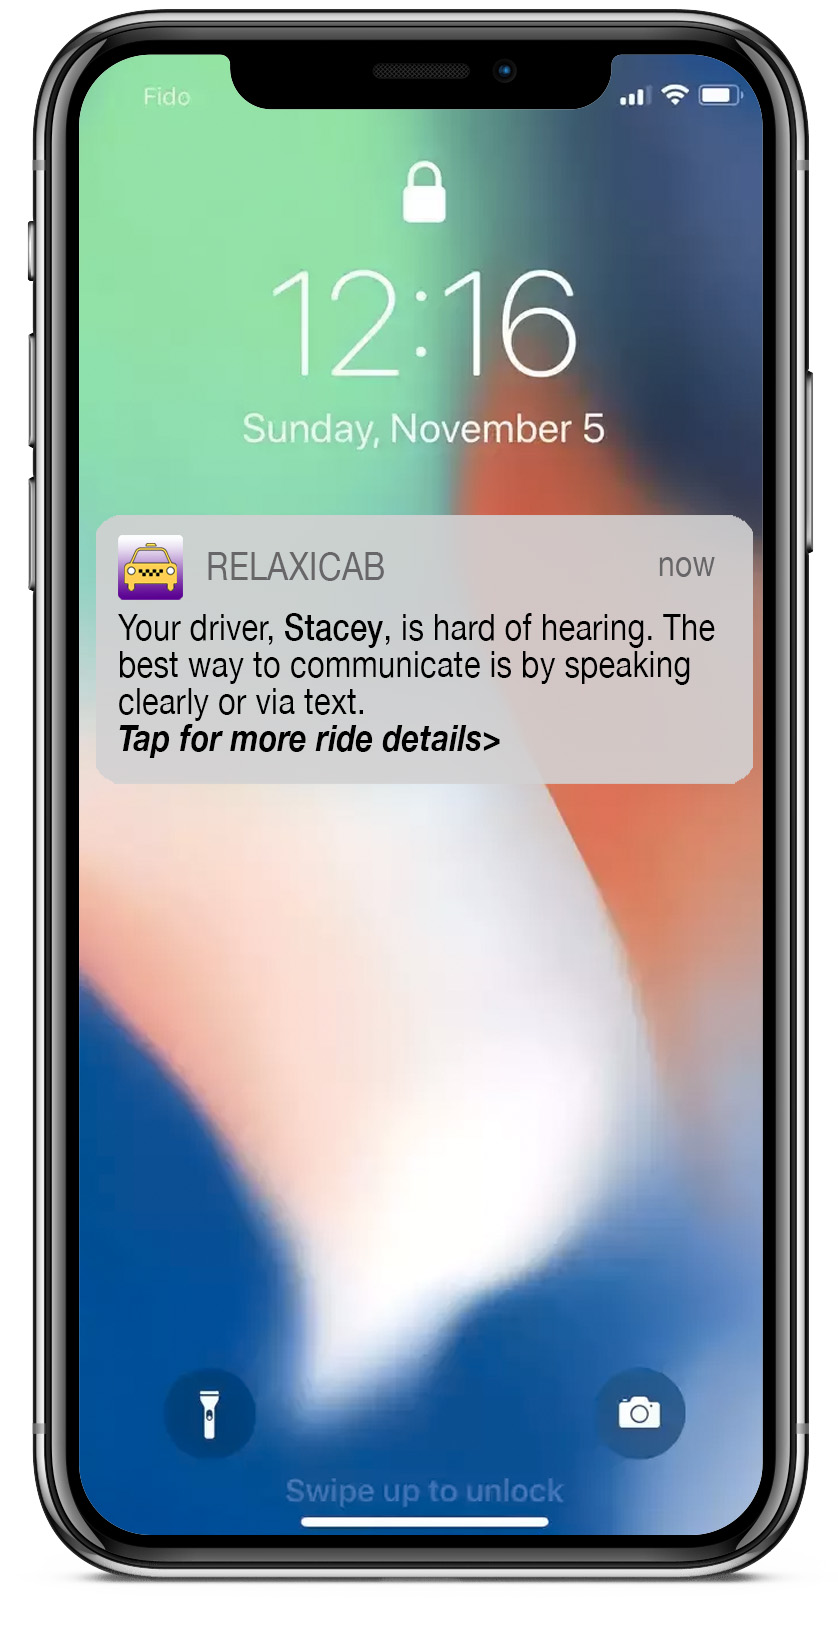 Your driver, Stacey, is hard of hearing. The best way to communicate is by speaking clearly or via text. Tap for more ride details>